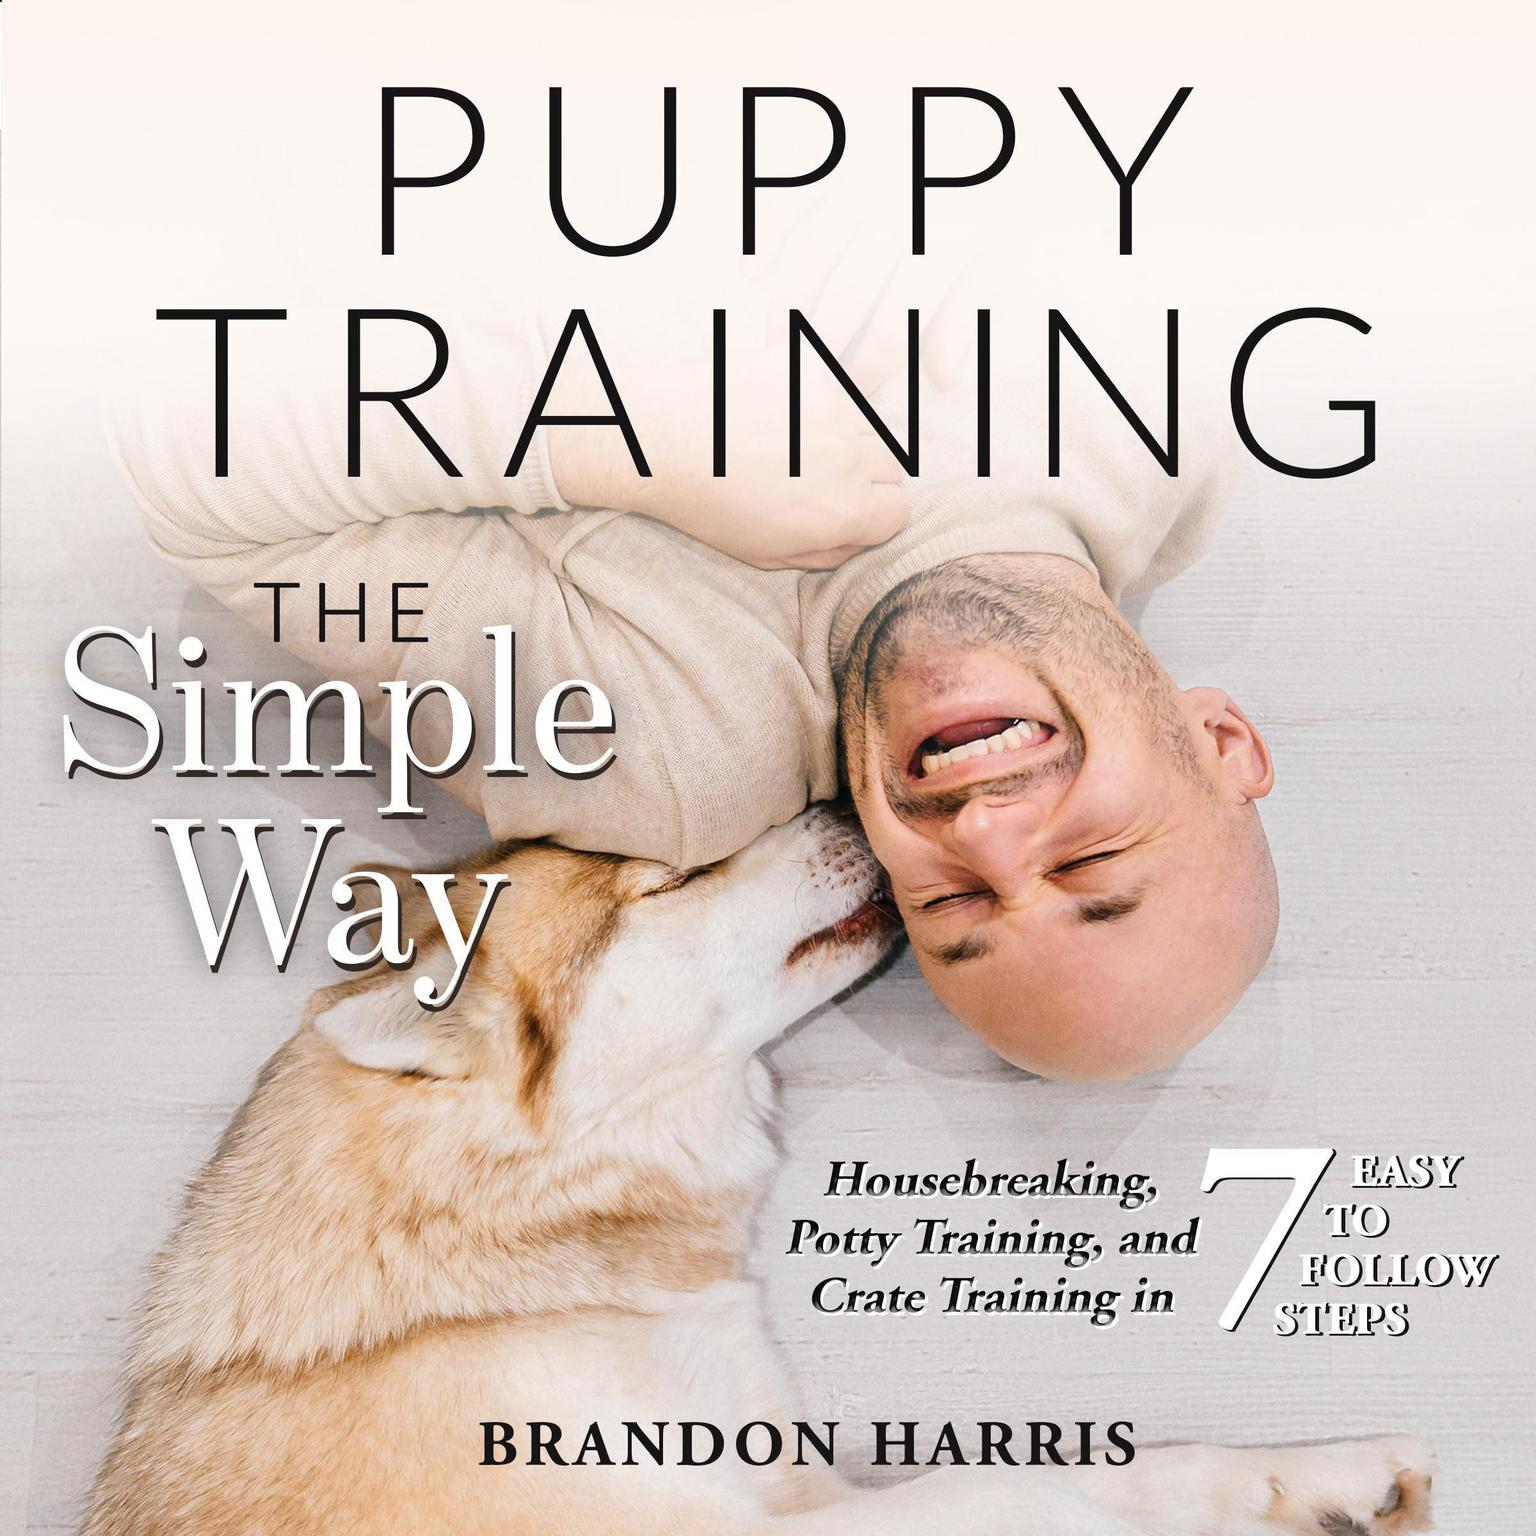 Puppy Training the Simple Way: Housebreaking, Potty Training and Crate Training in 7 Easy-to-Follow Steps Audiobook, by Brandon Harris